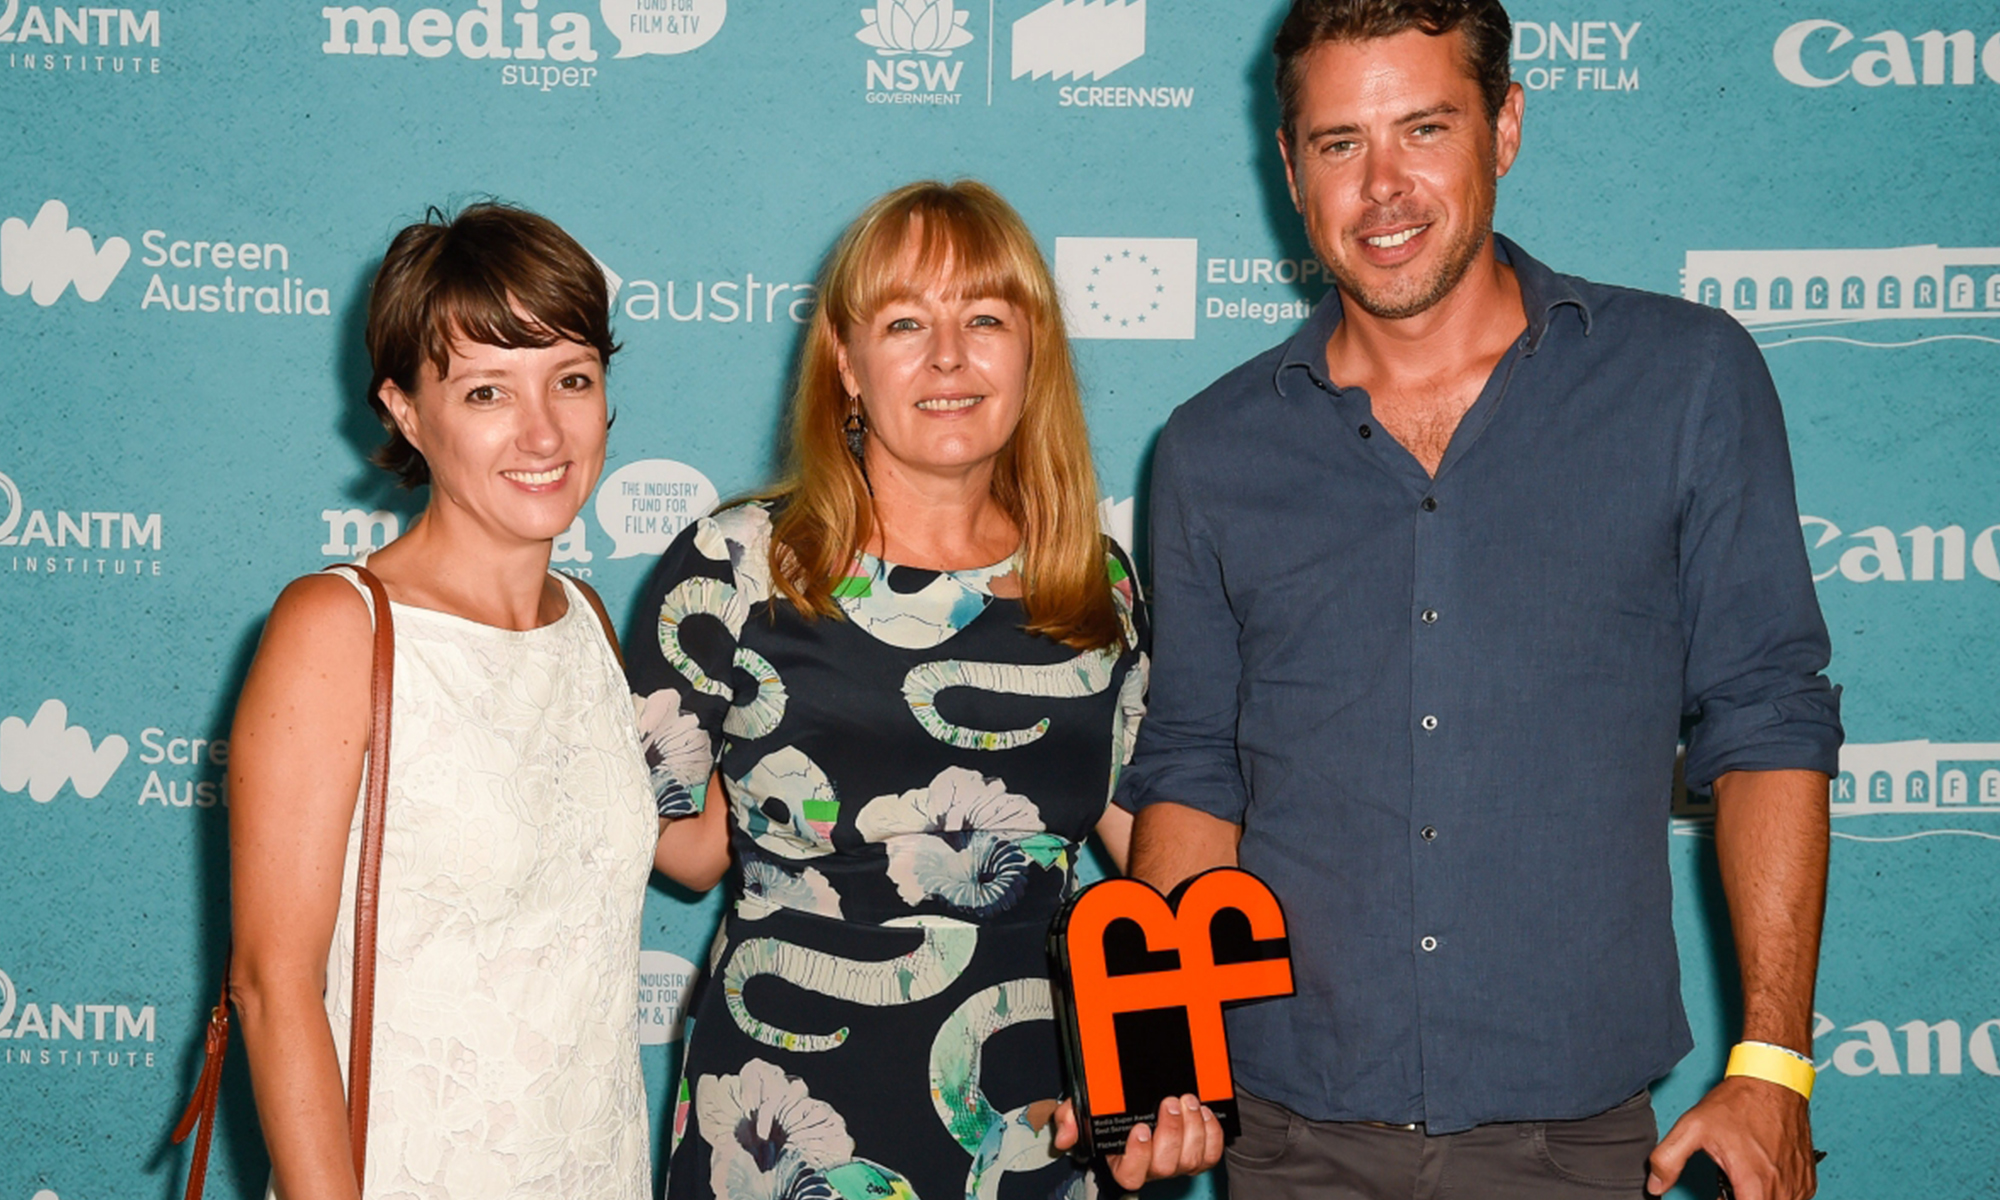 Flickerfest-filmfestivallife